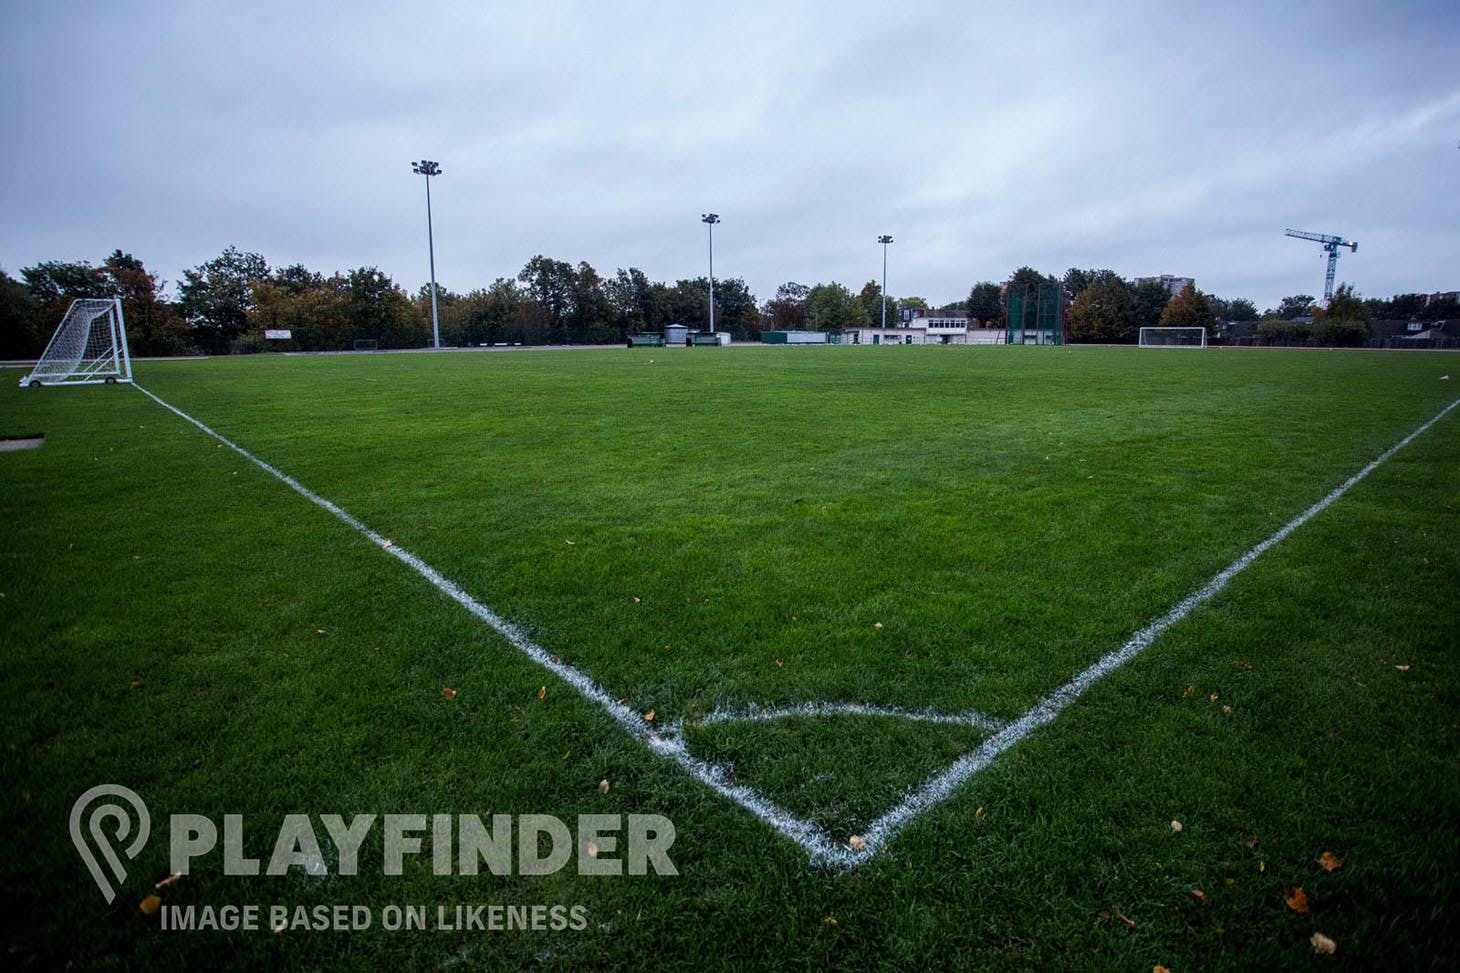 Barton Clough Playing Fields 11 a side | Grass football pitch